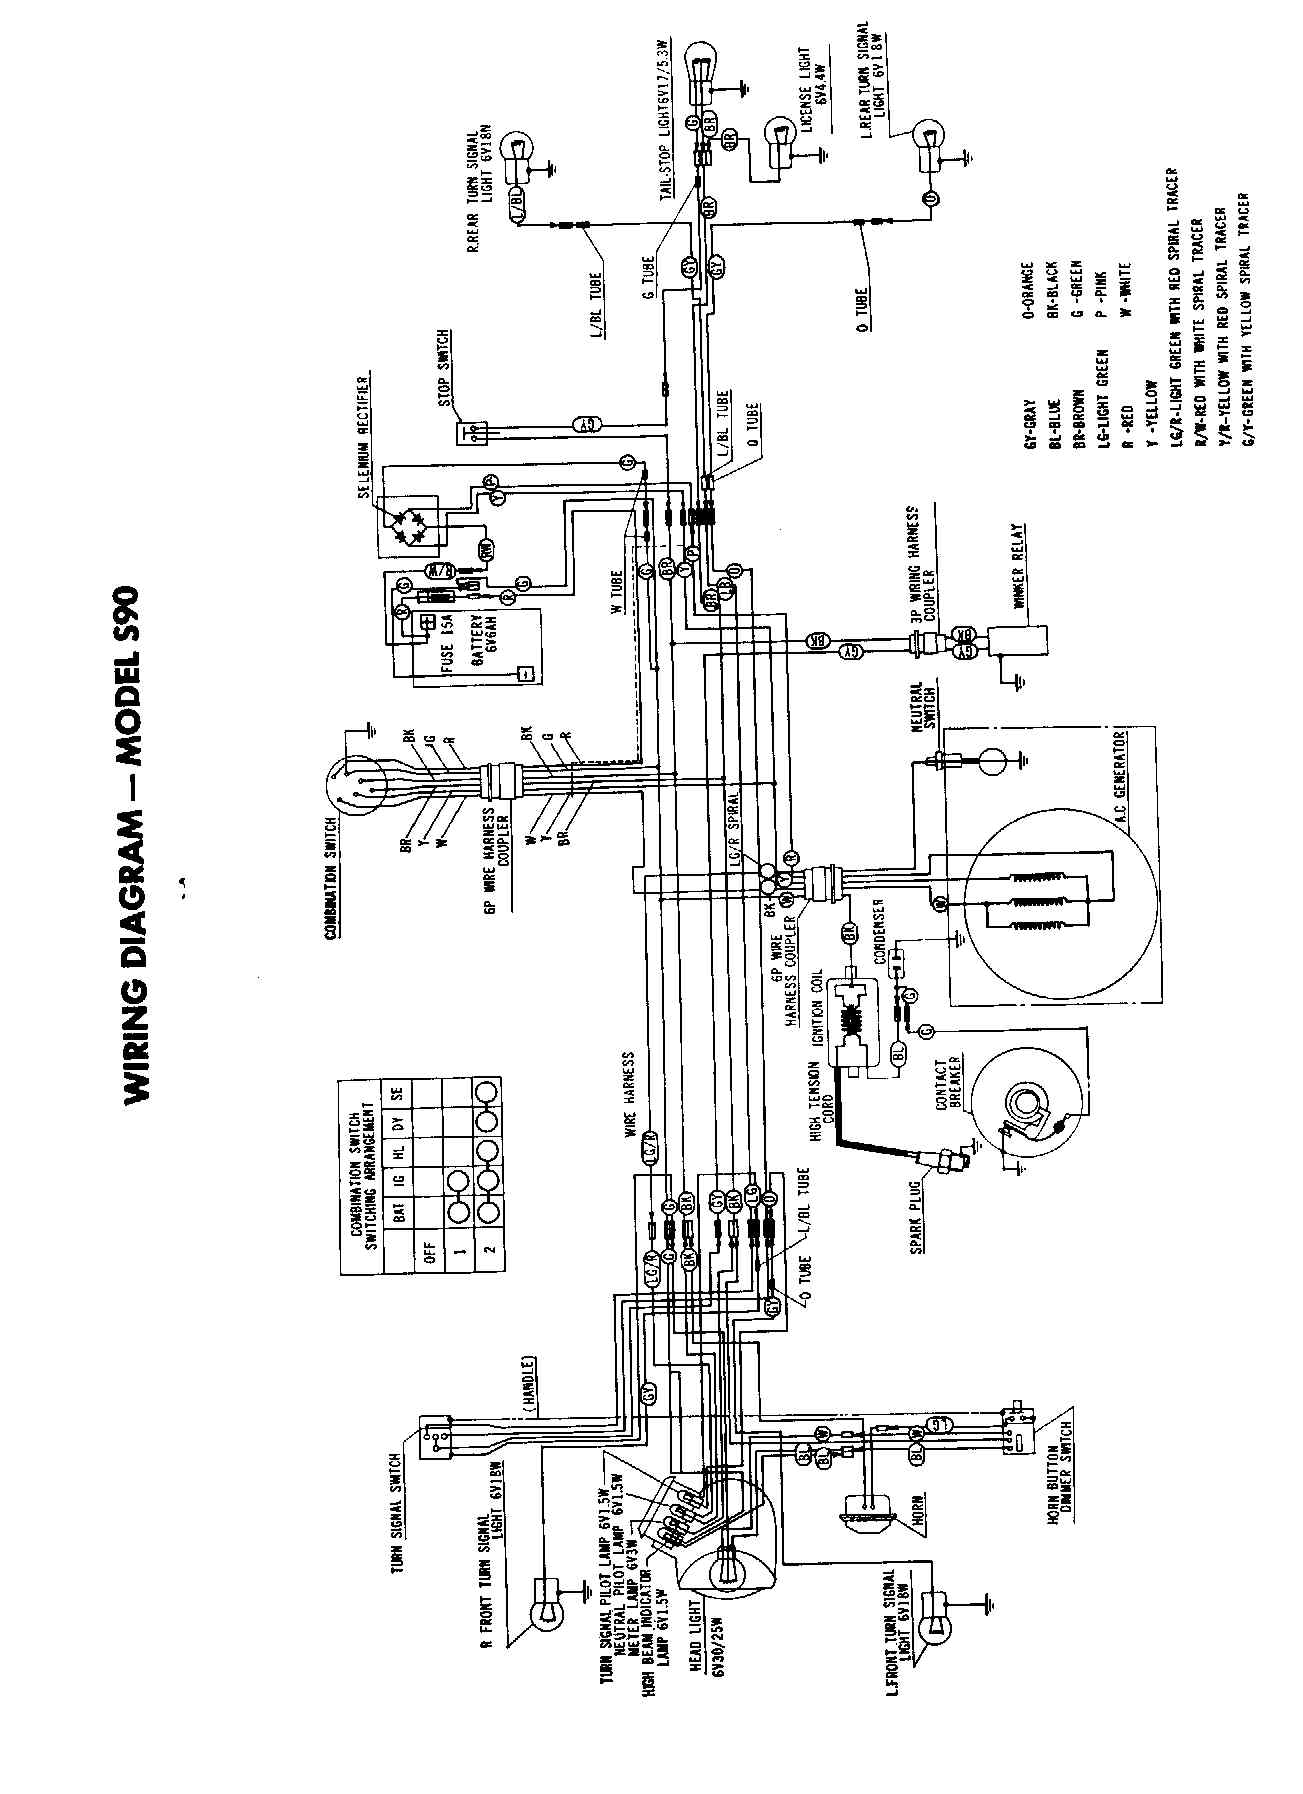 Honda S90 Wiring Free Diagram For You Harness Schematics Rh Ksefanzone Com C90